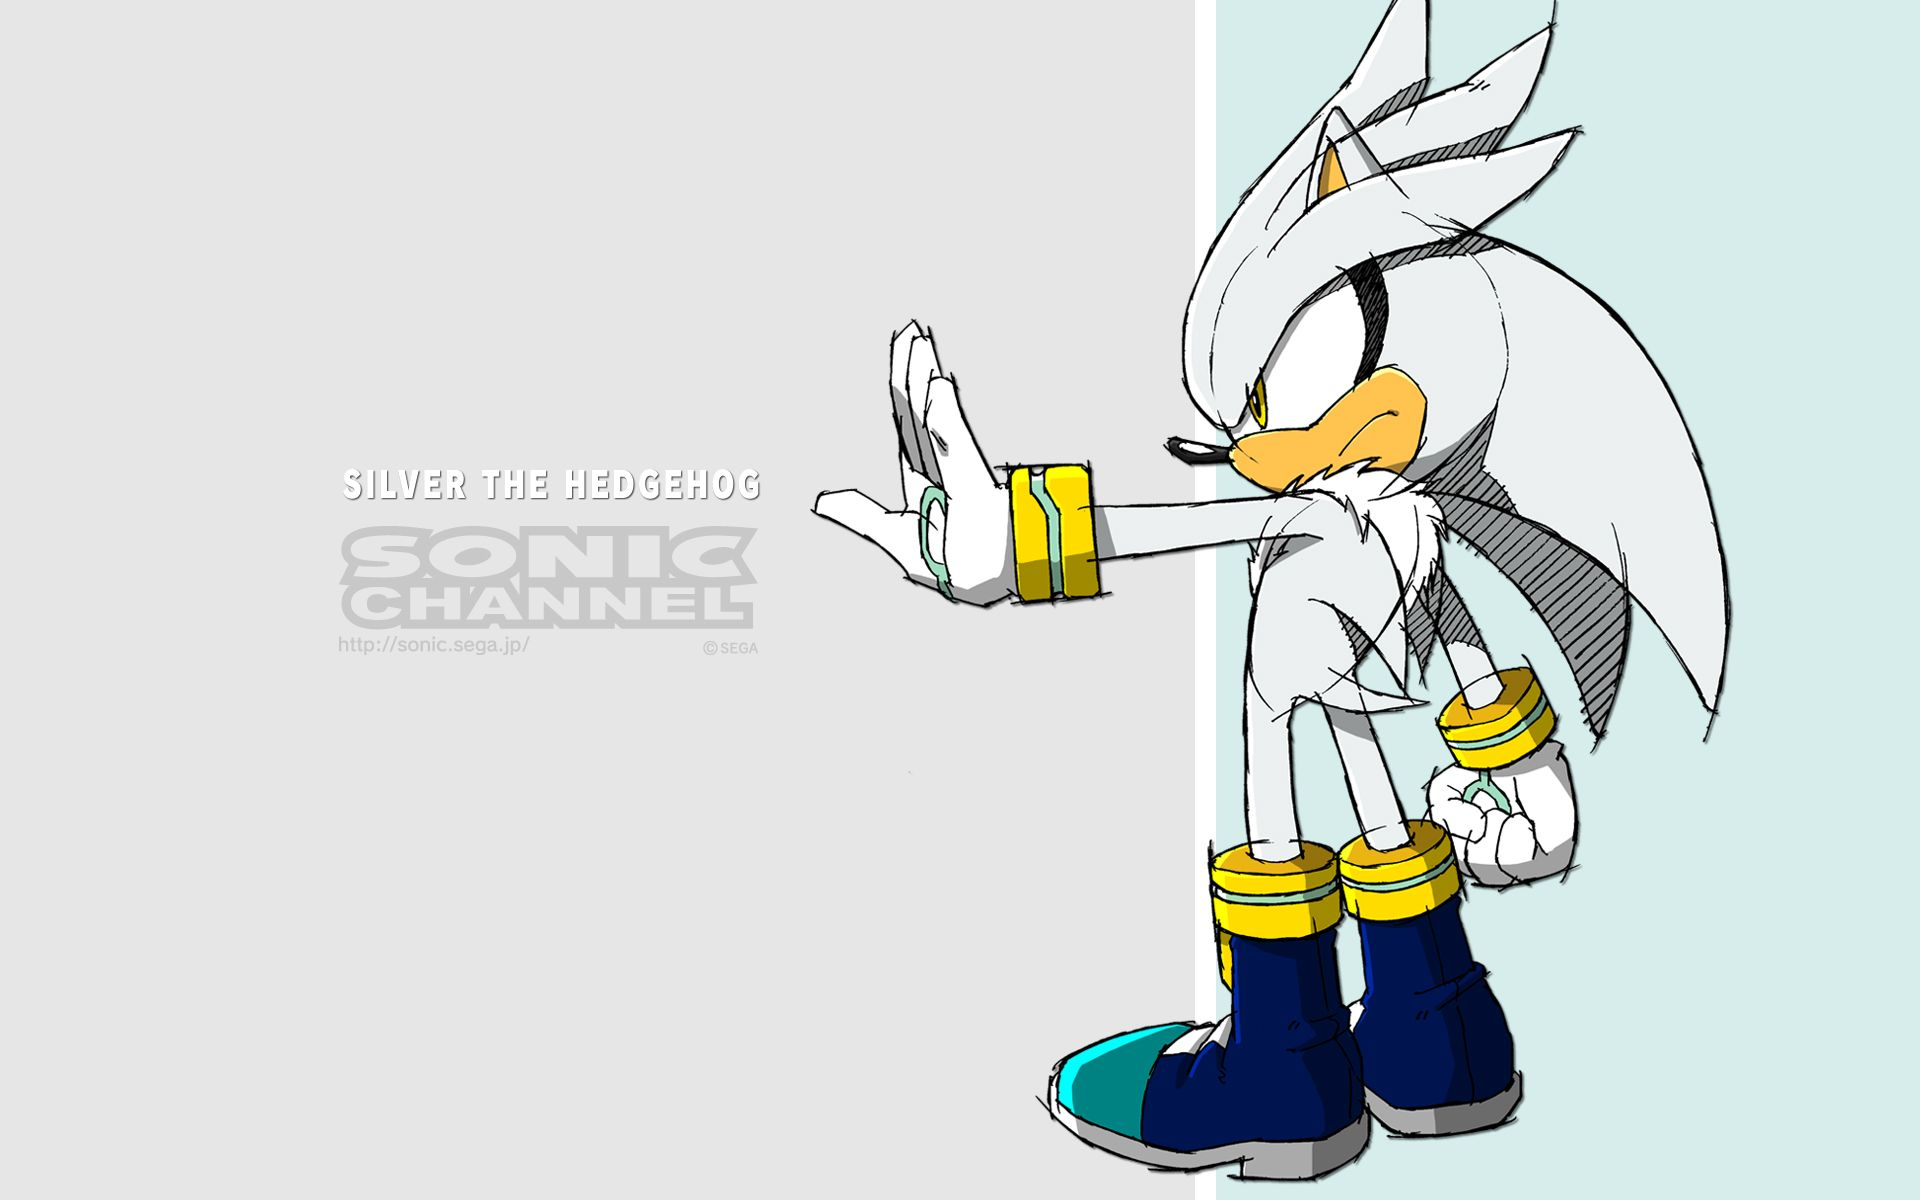 Sonic Channel Wallpaper Silver The Hedgehog Silver The Hedgehog Wallpaper Sonic